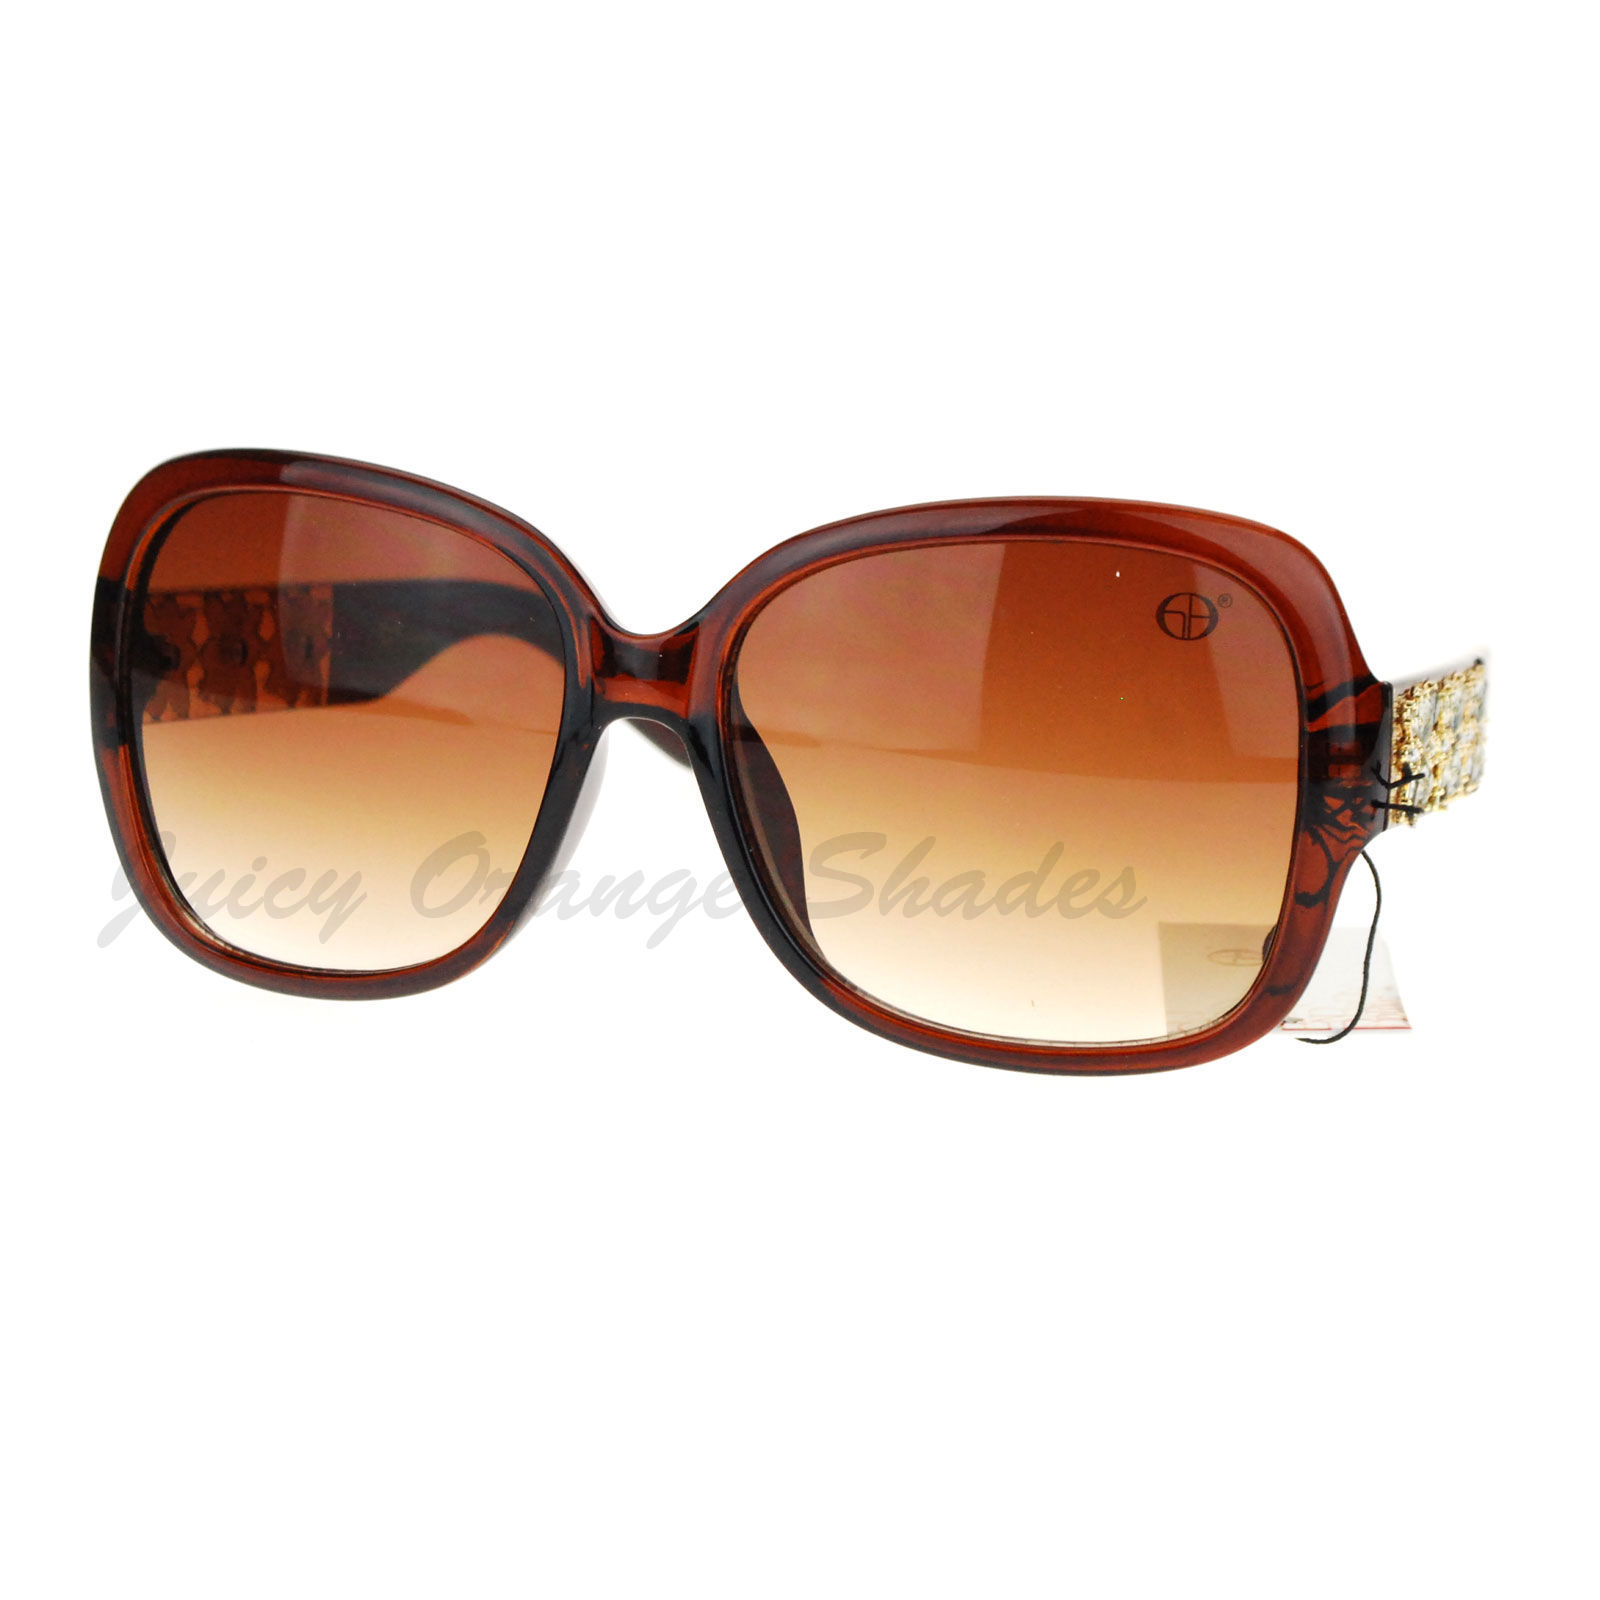 Designer Fashion Womens Sunglasses Square Frame Floral Rhinestones